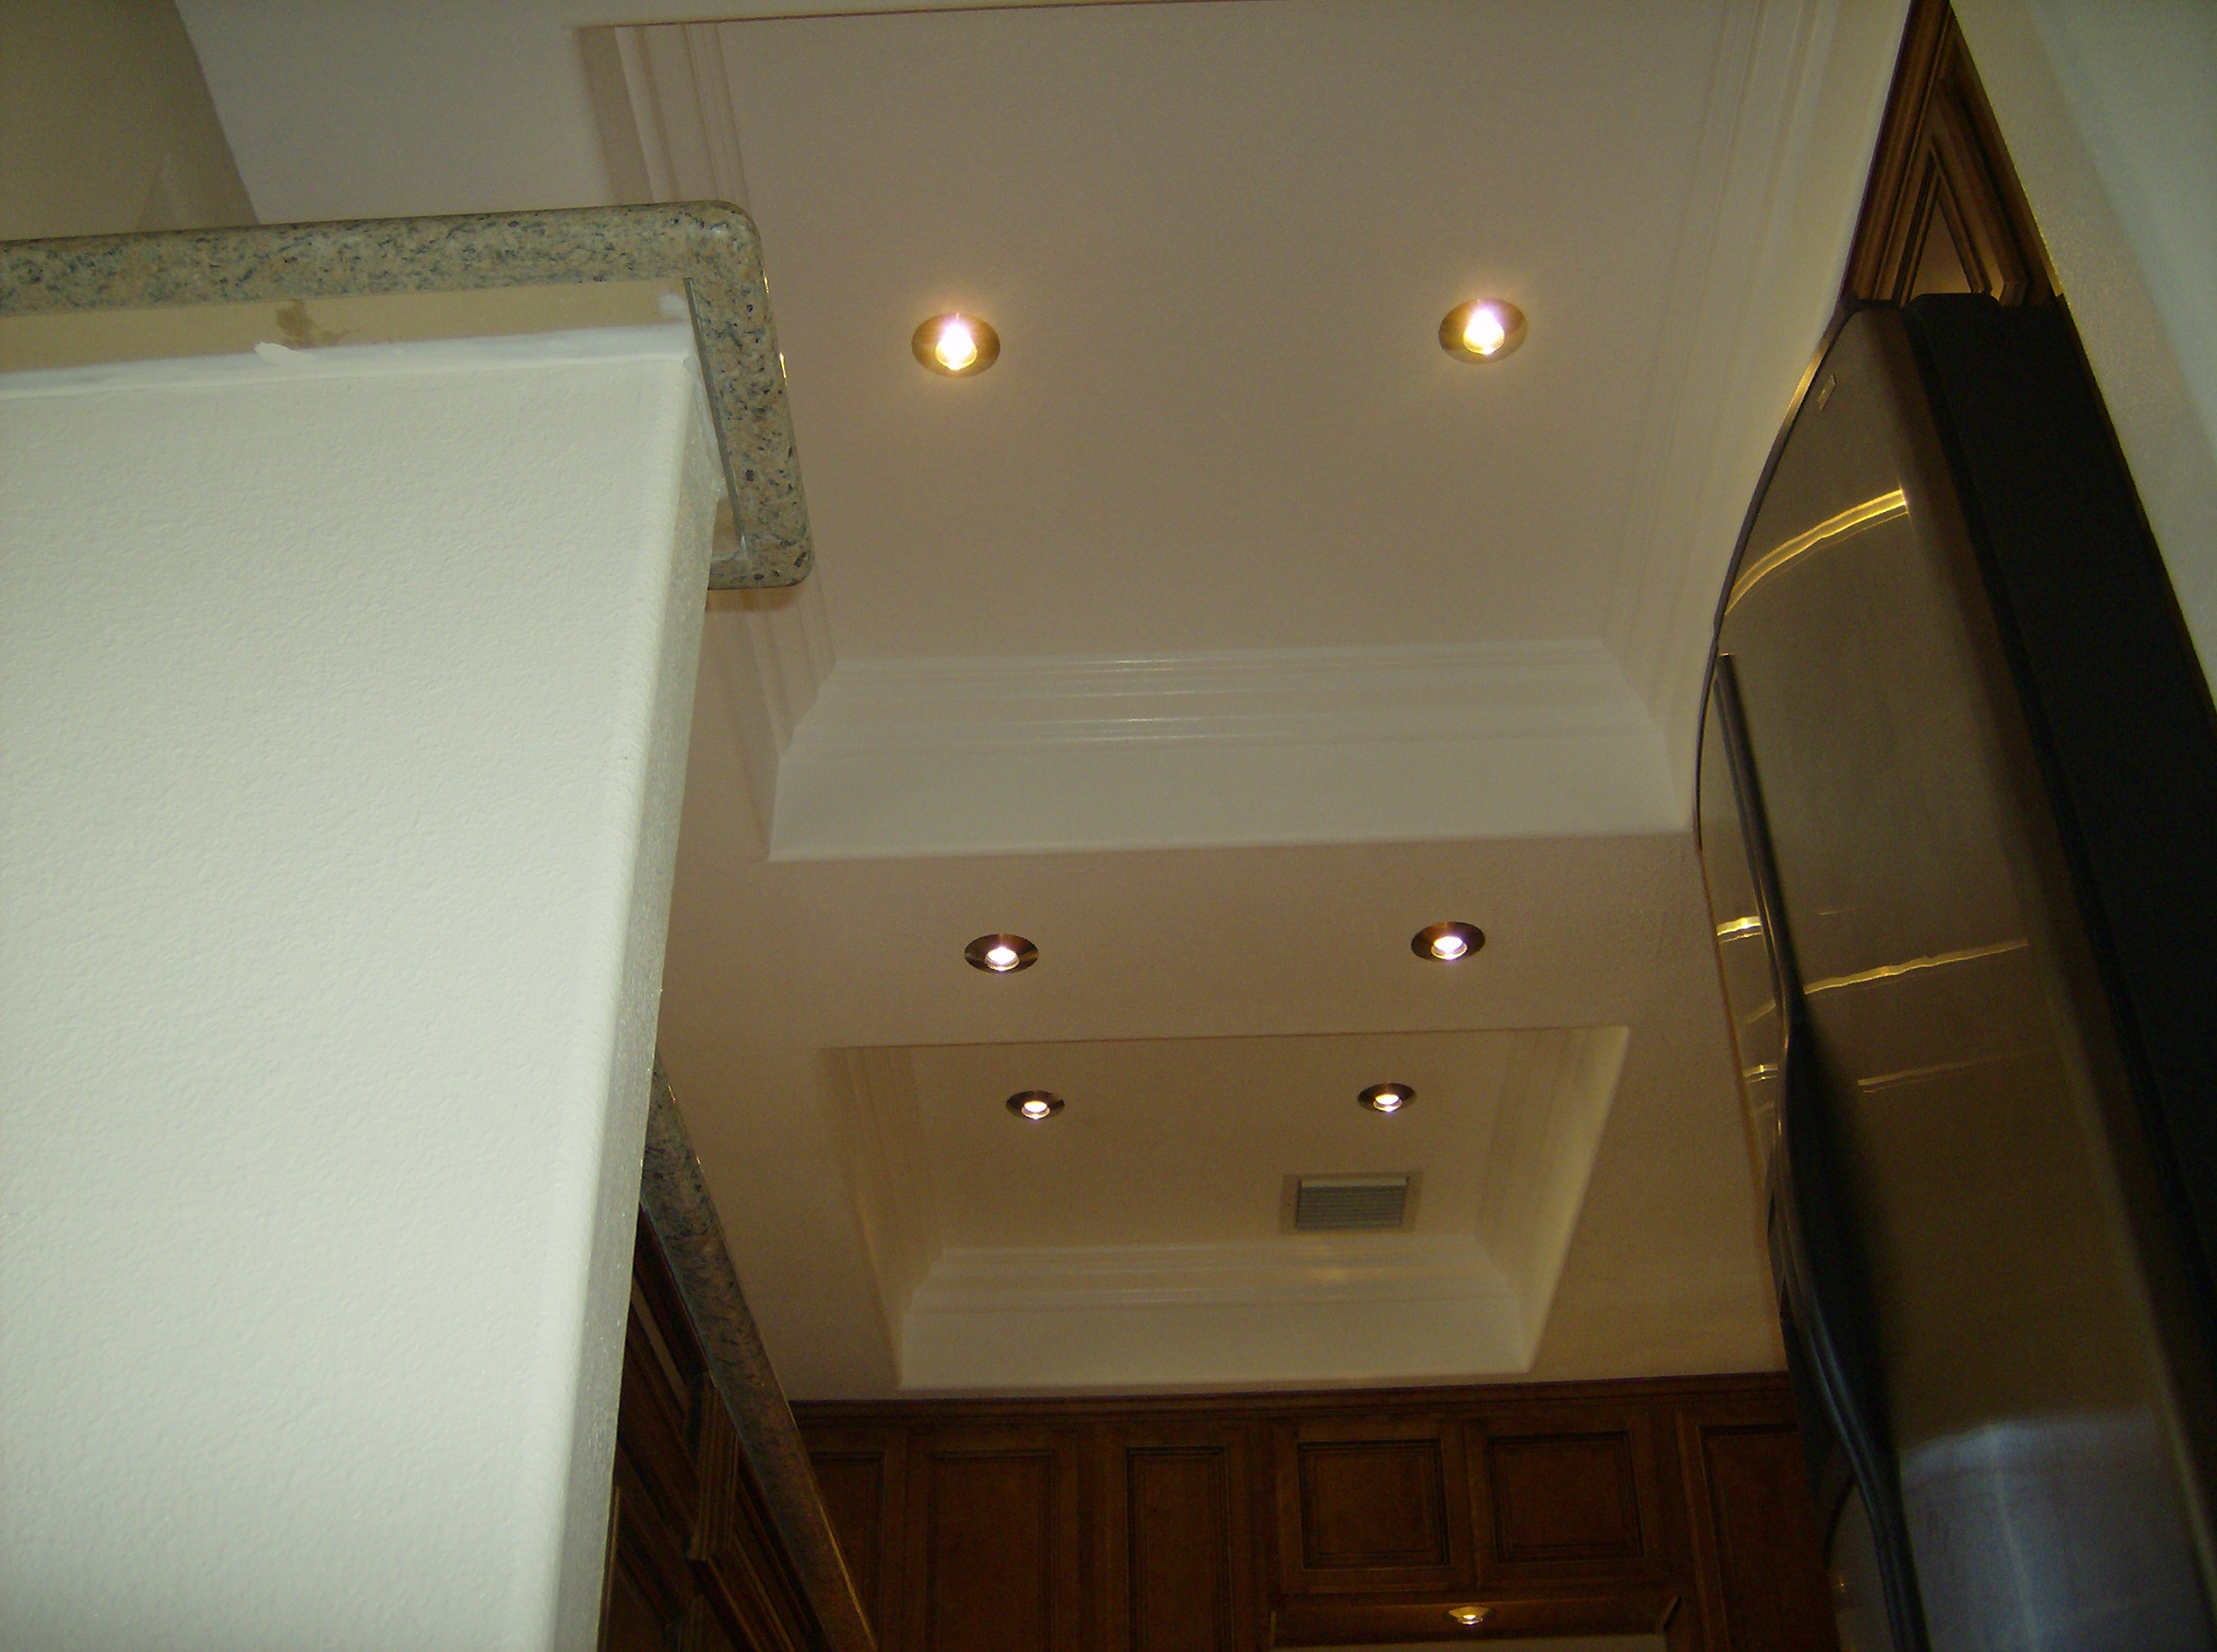 BOX CEILING DESIGN